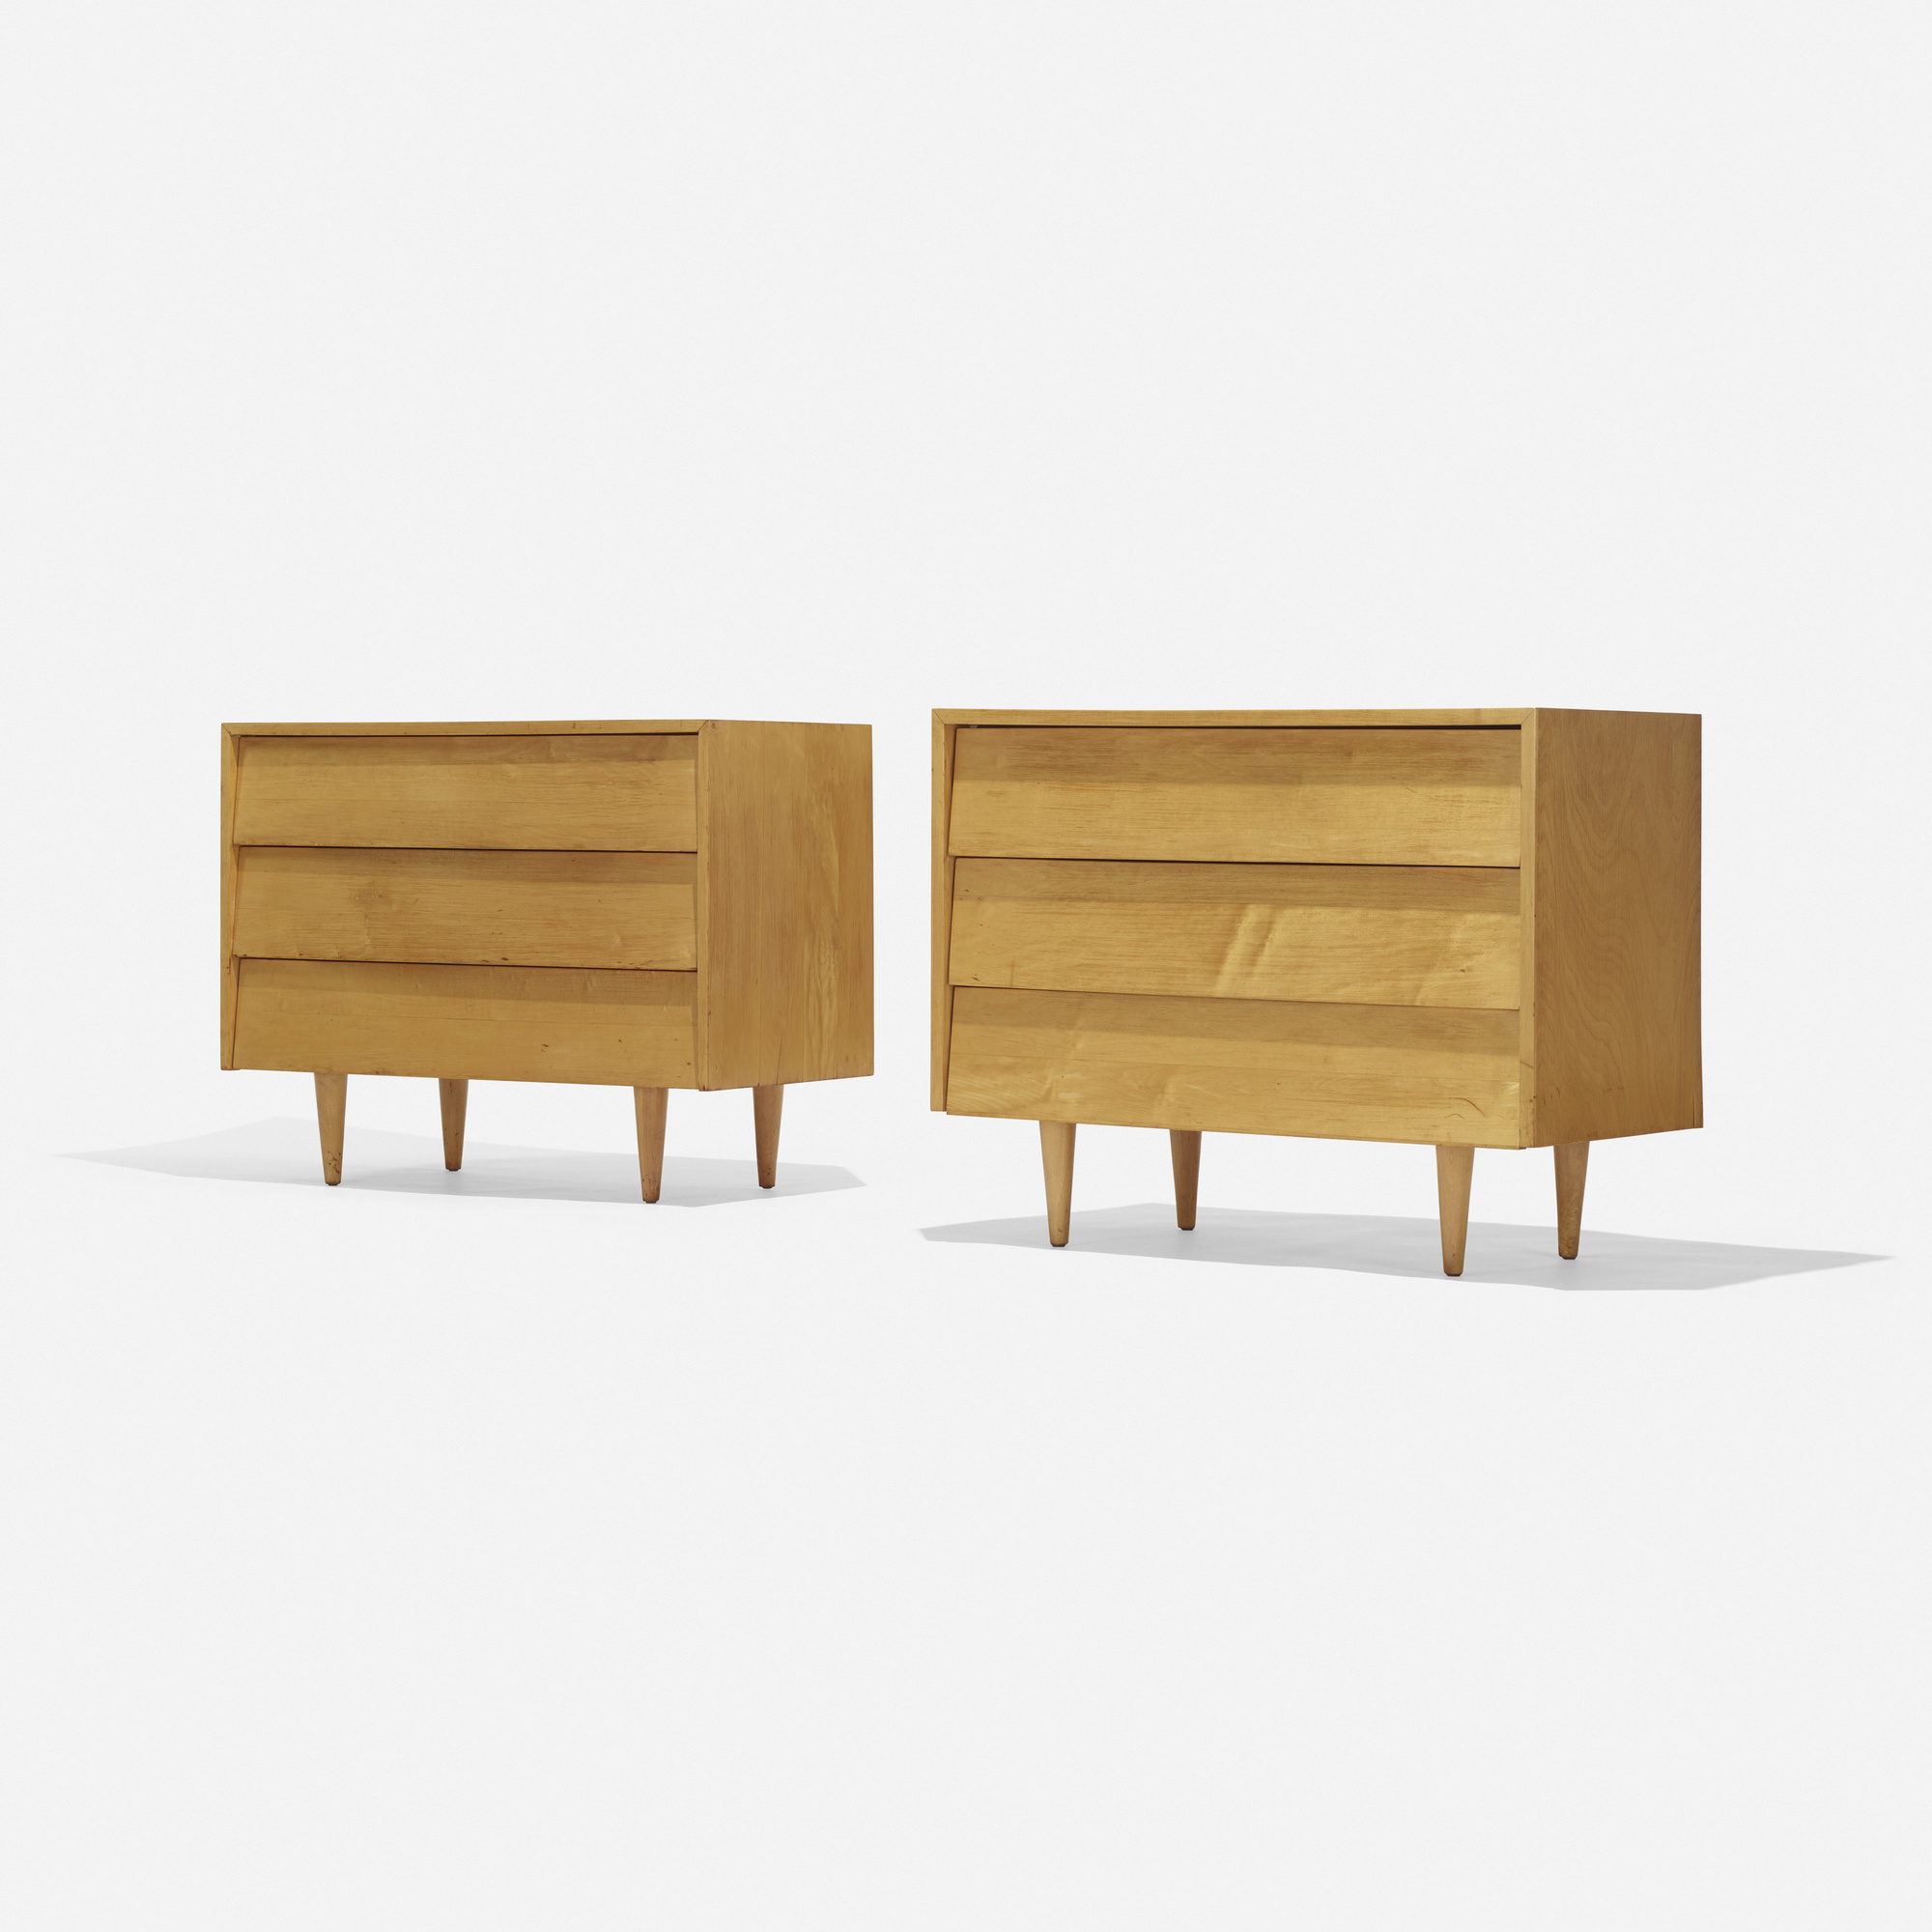 167: Florence Knoll / cabinets, pair (1 of 2)